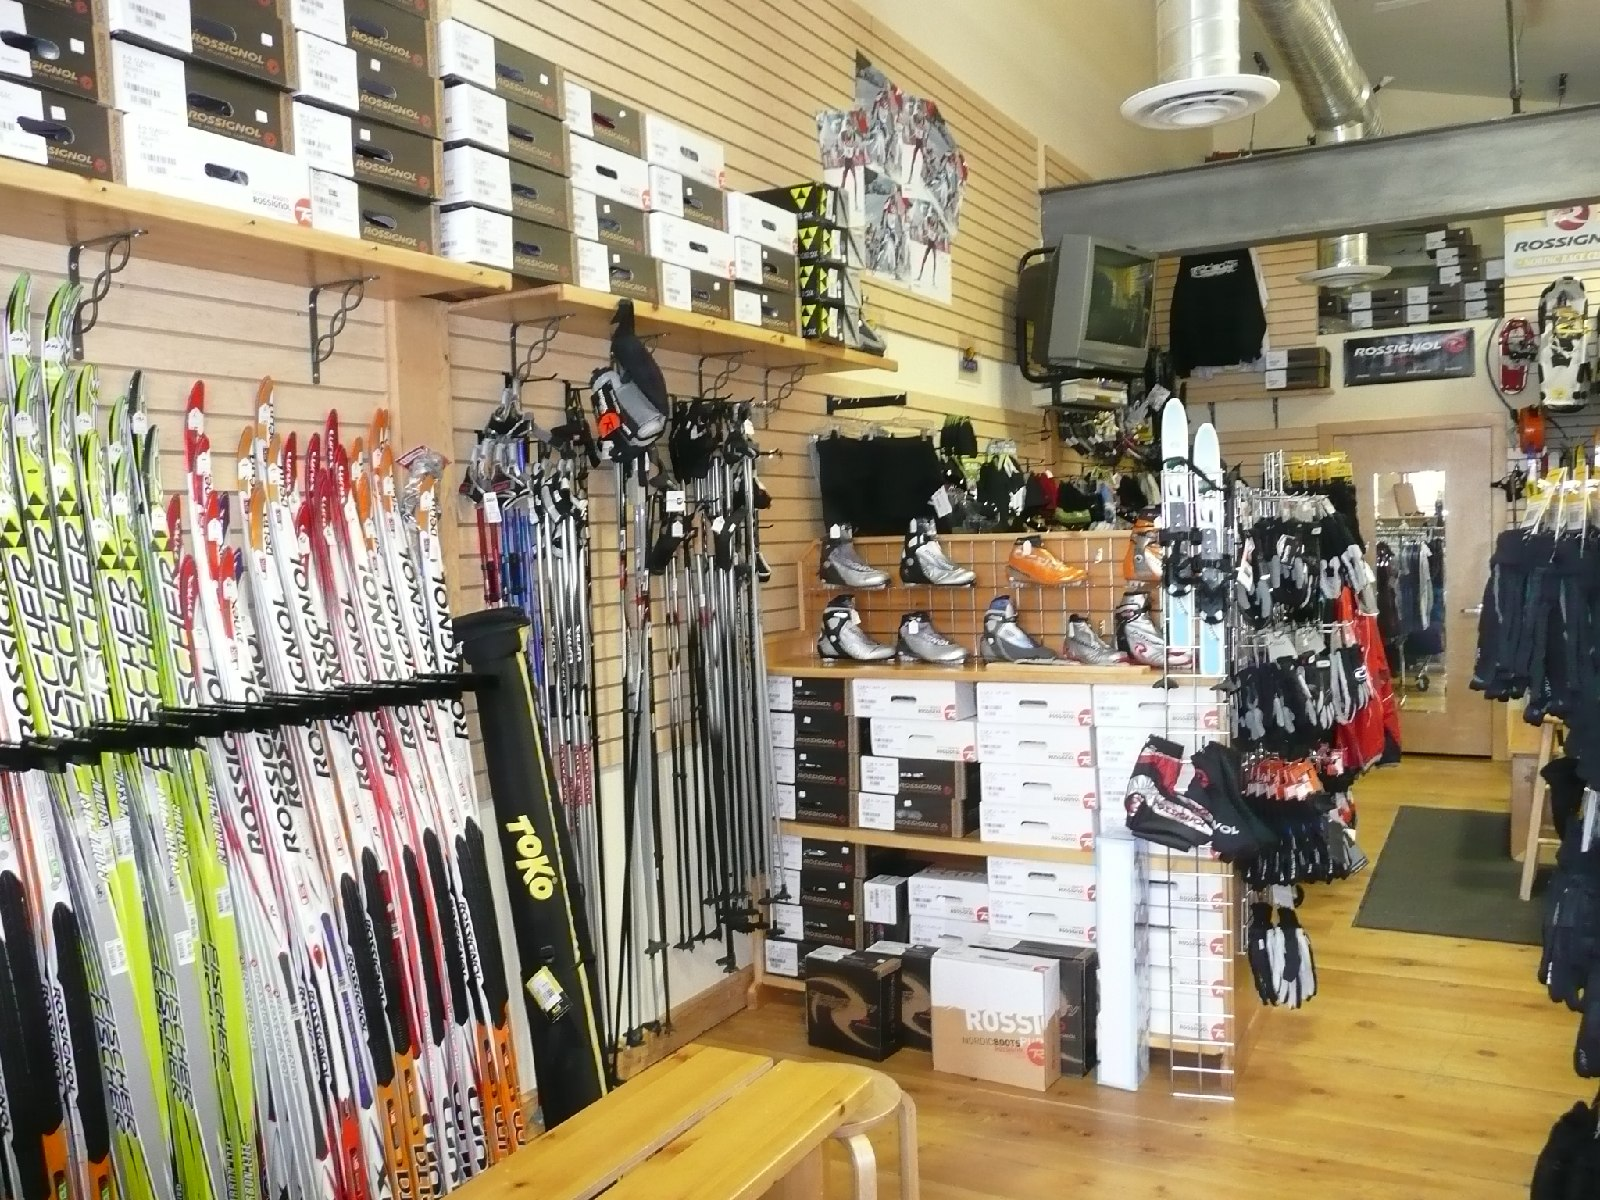 Cross Country Skis For Sale >> Mammoth Cross Country Skis Brian S Bicycles Xc Skis Ski Rentals